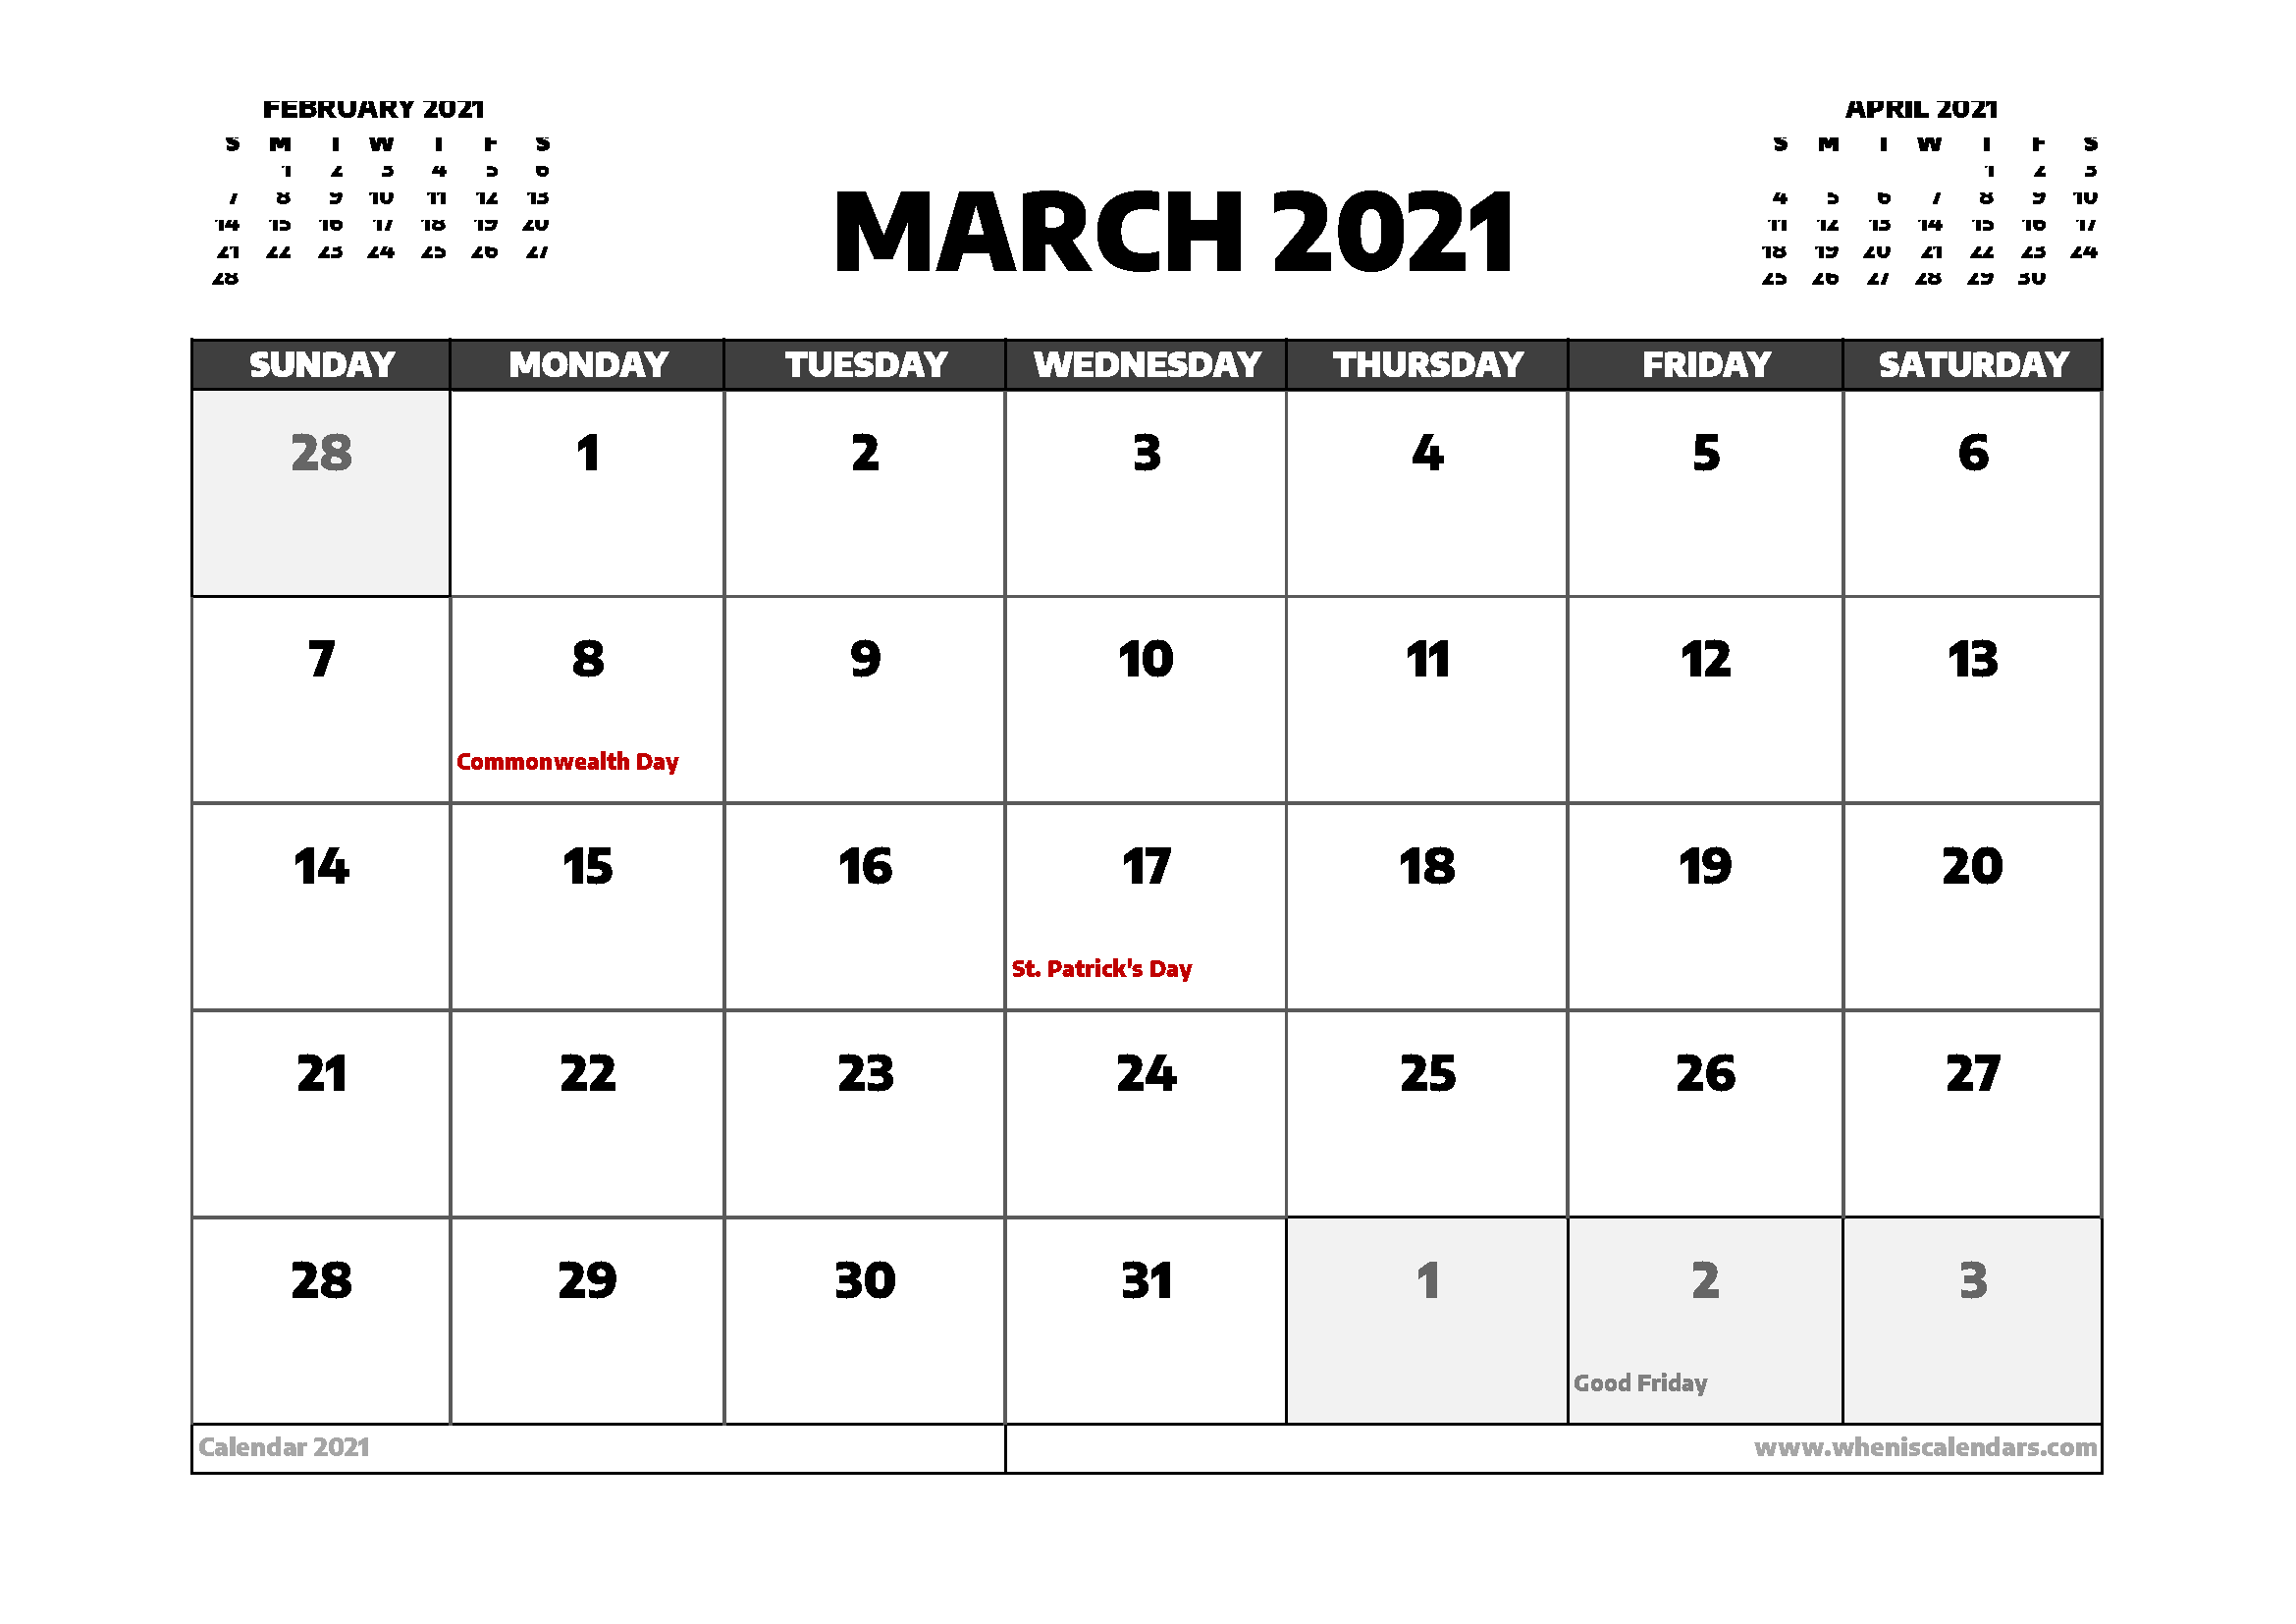 March 2021 Calendar Canada With Holidays For March Holidays 2021 Calendars